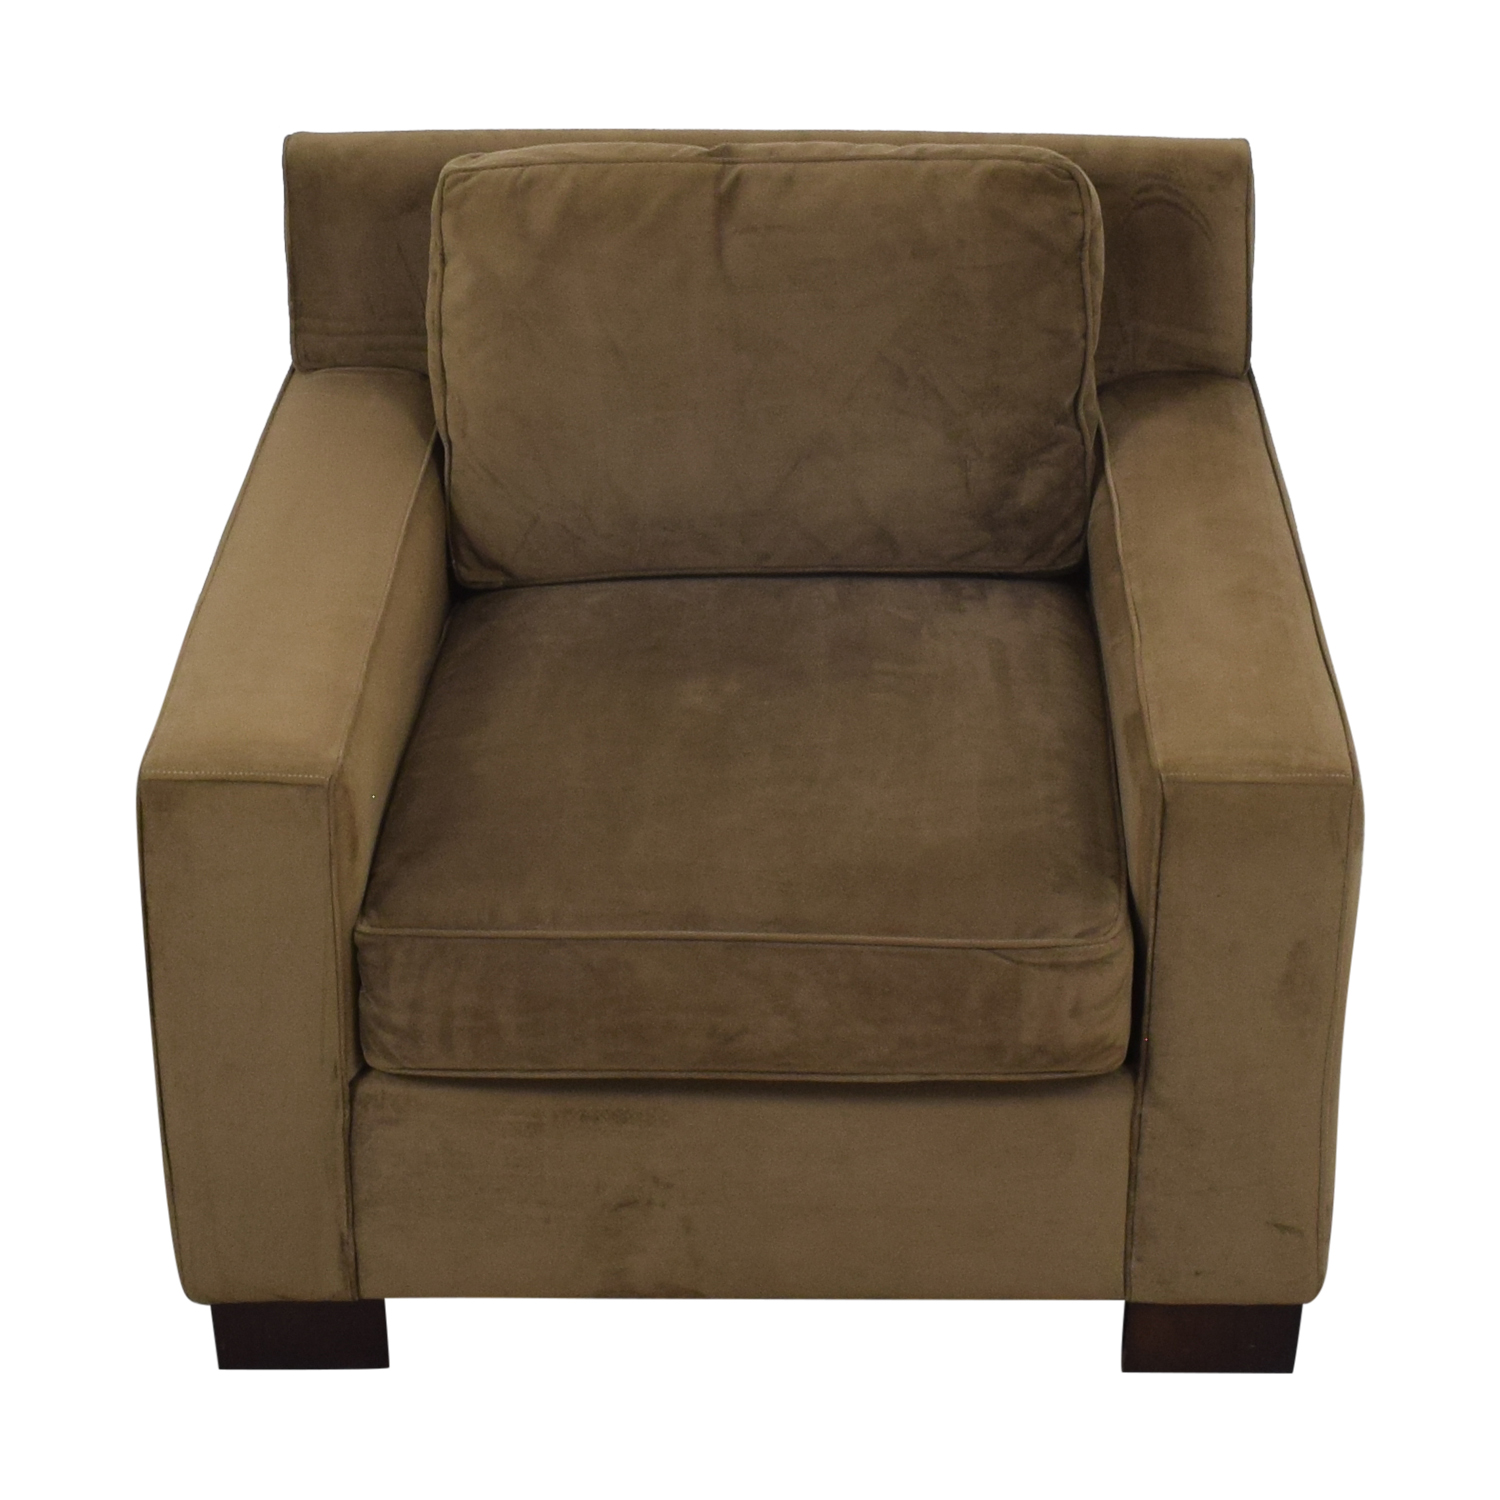 West Elm Goodwin Armchair / Accent Chairs